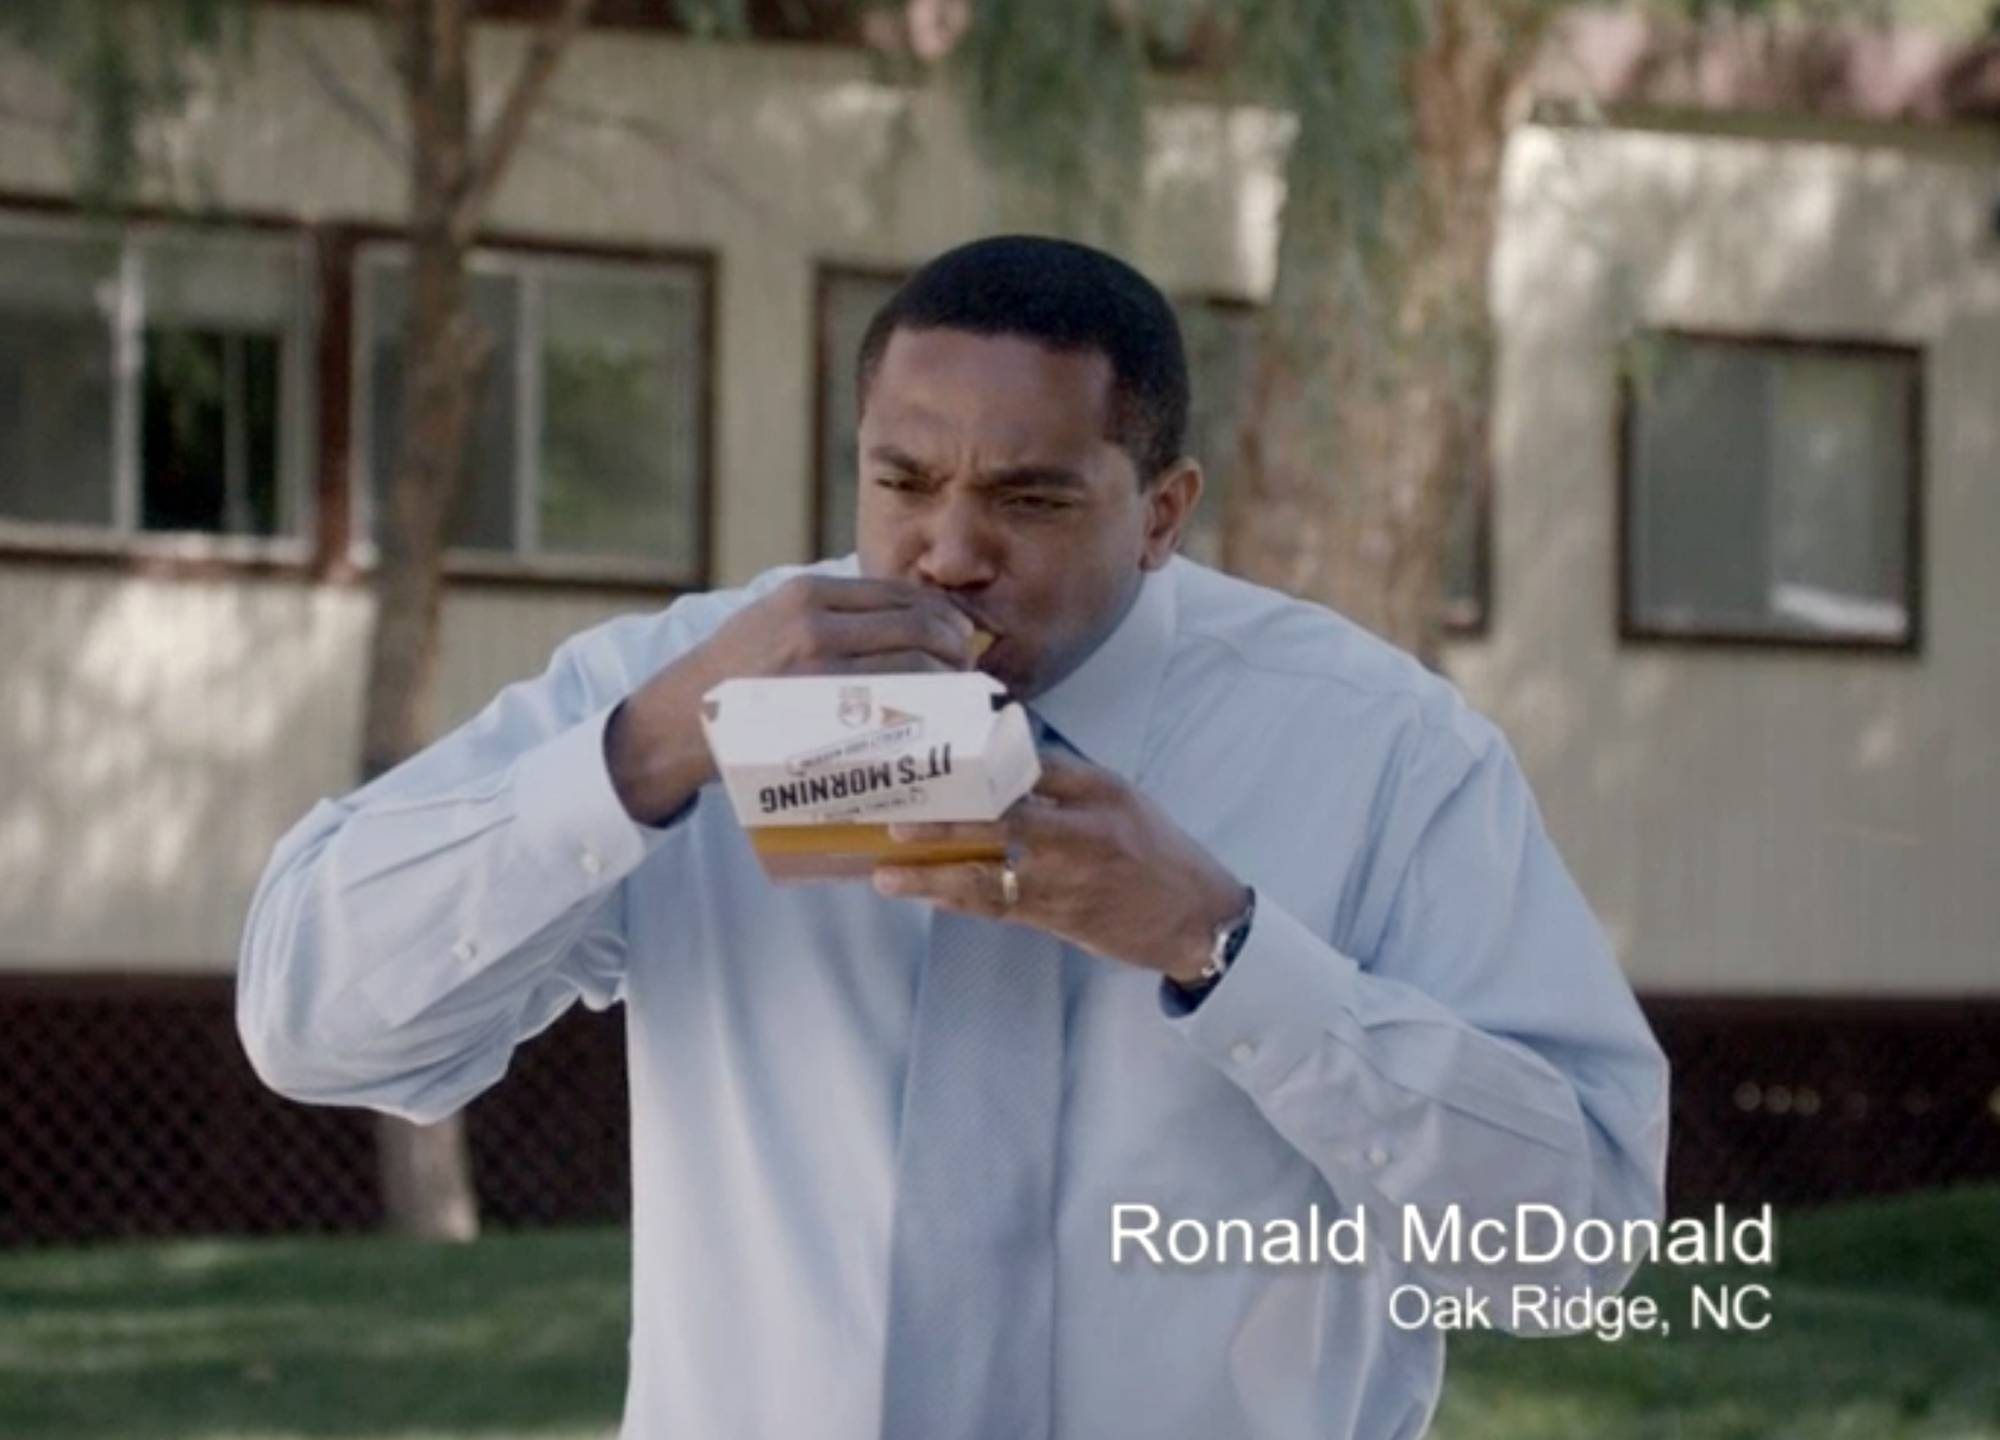 Associated PressTaco Bell's new advertising campaign will feature real-life people named Ronald McDonald. The one shown here is from Oak Ridge, N.C.